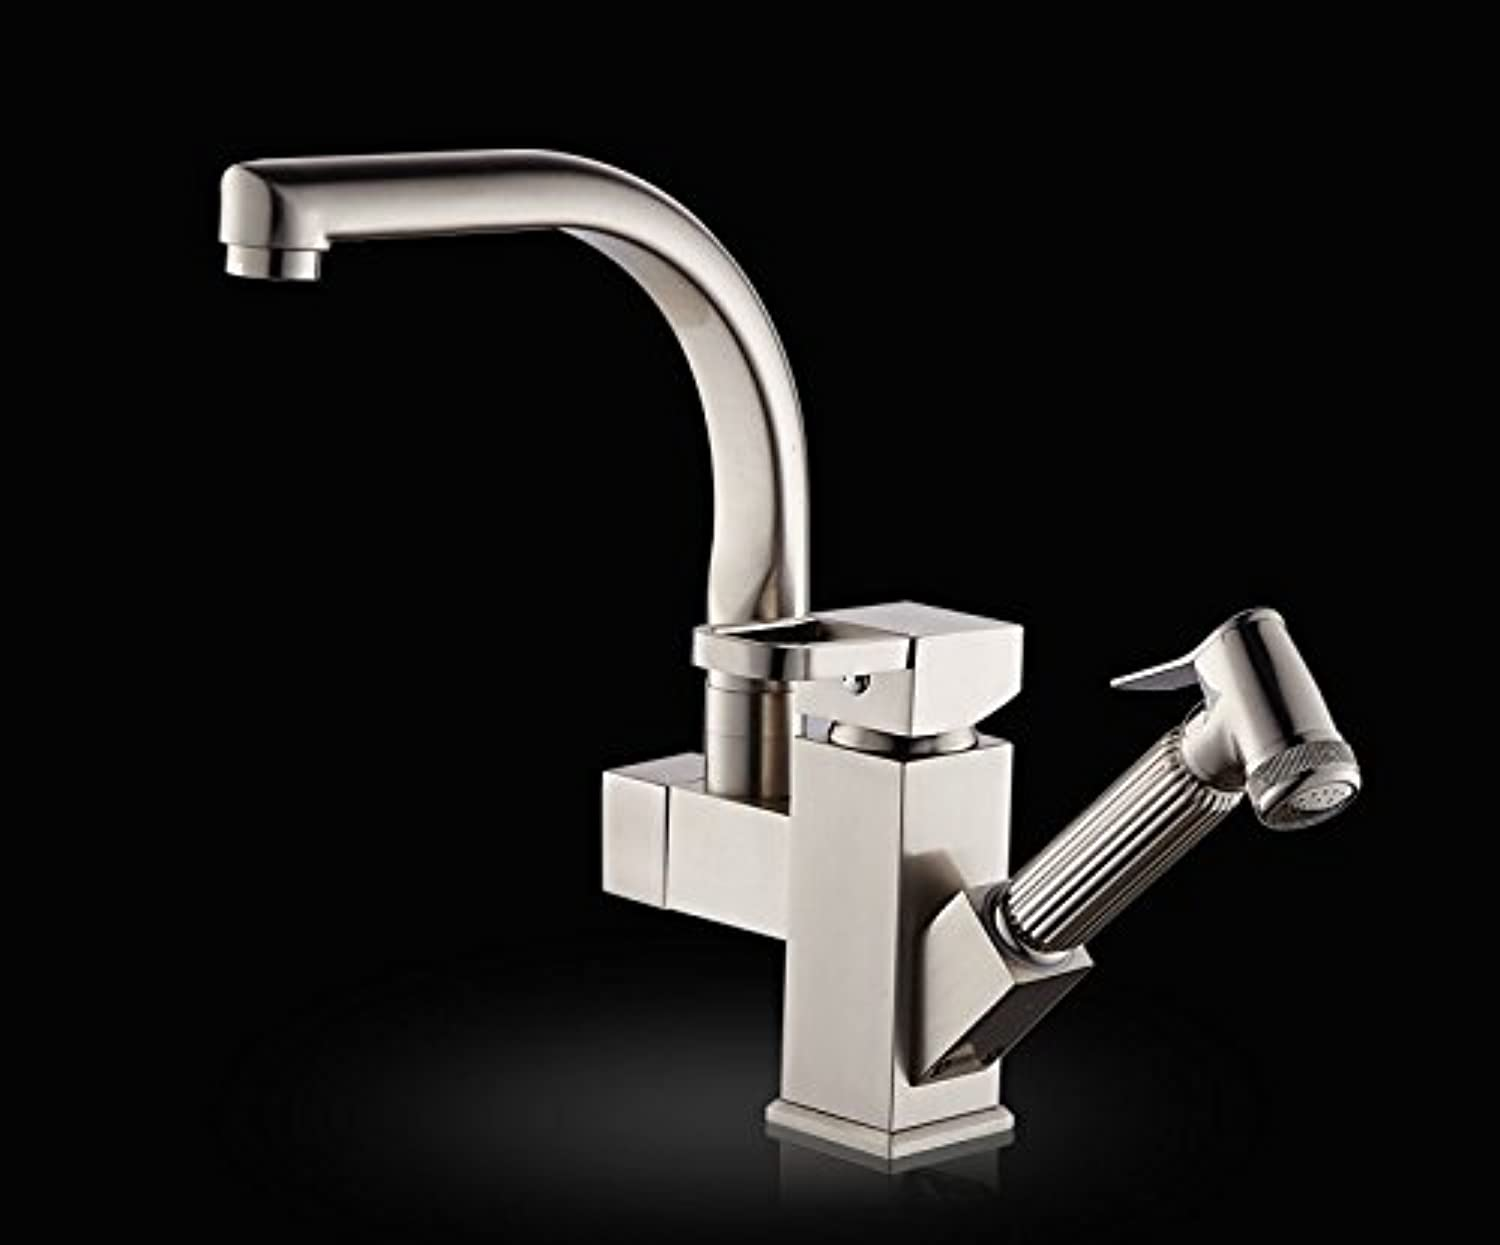 Bijjaladeva Antique Bathroom Sink Vessel Faucet Basin Mixer Tap Pull kitchen faucet brass body full of hot and cold dishes and wash basin faucet 000 to redate the dish sink taps A